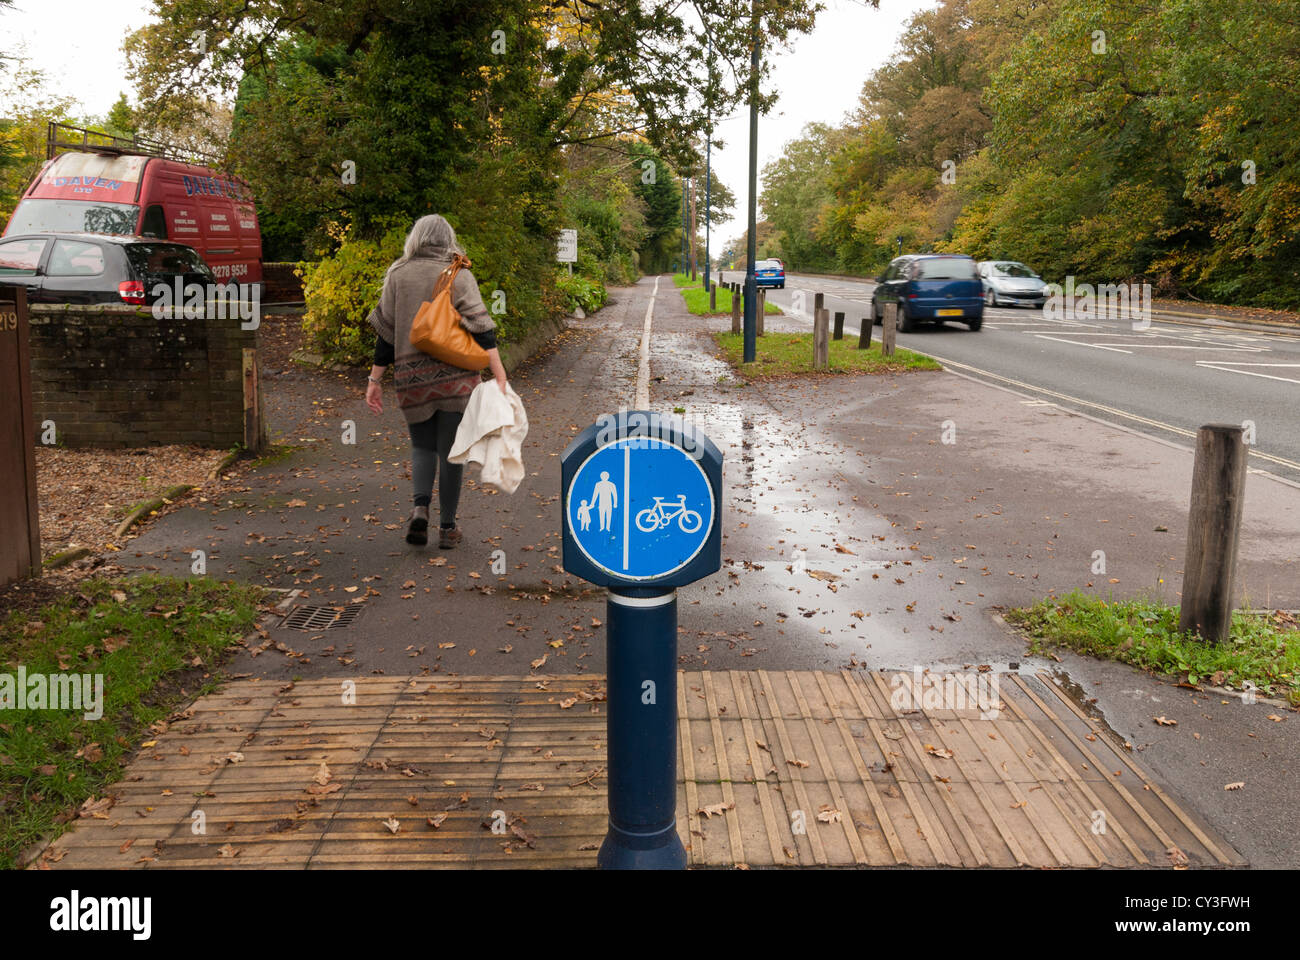 pedestrian cycle way dividing sign on shared footpath alongside road - Stock Image